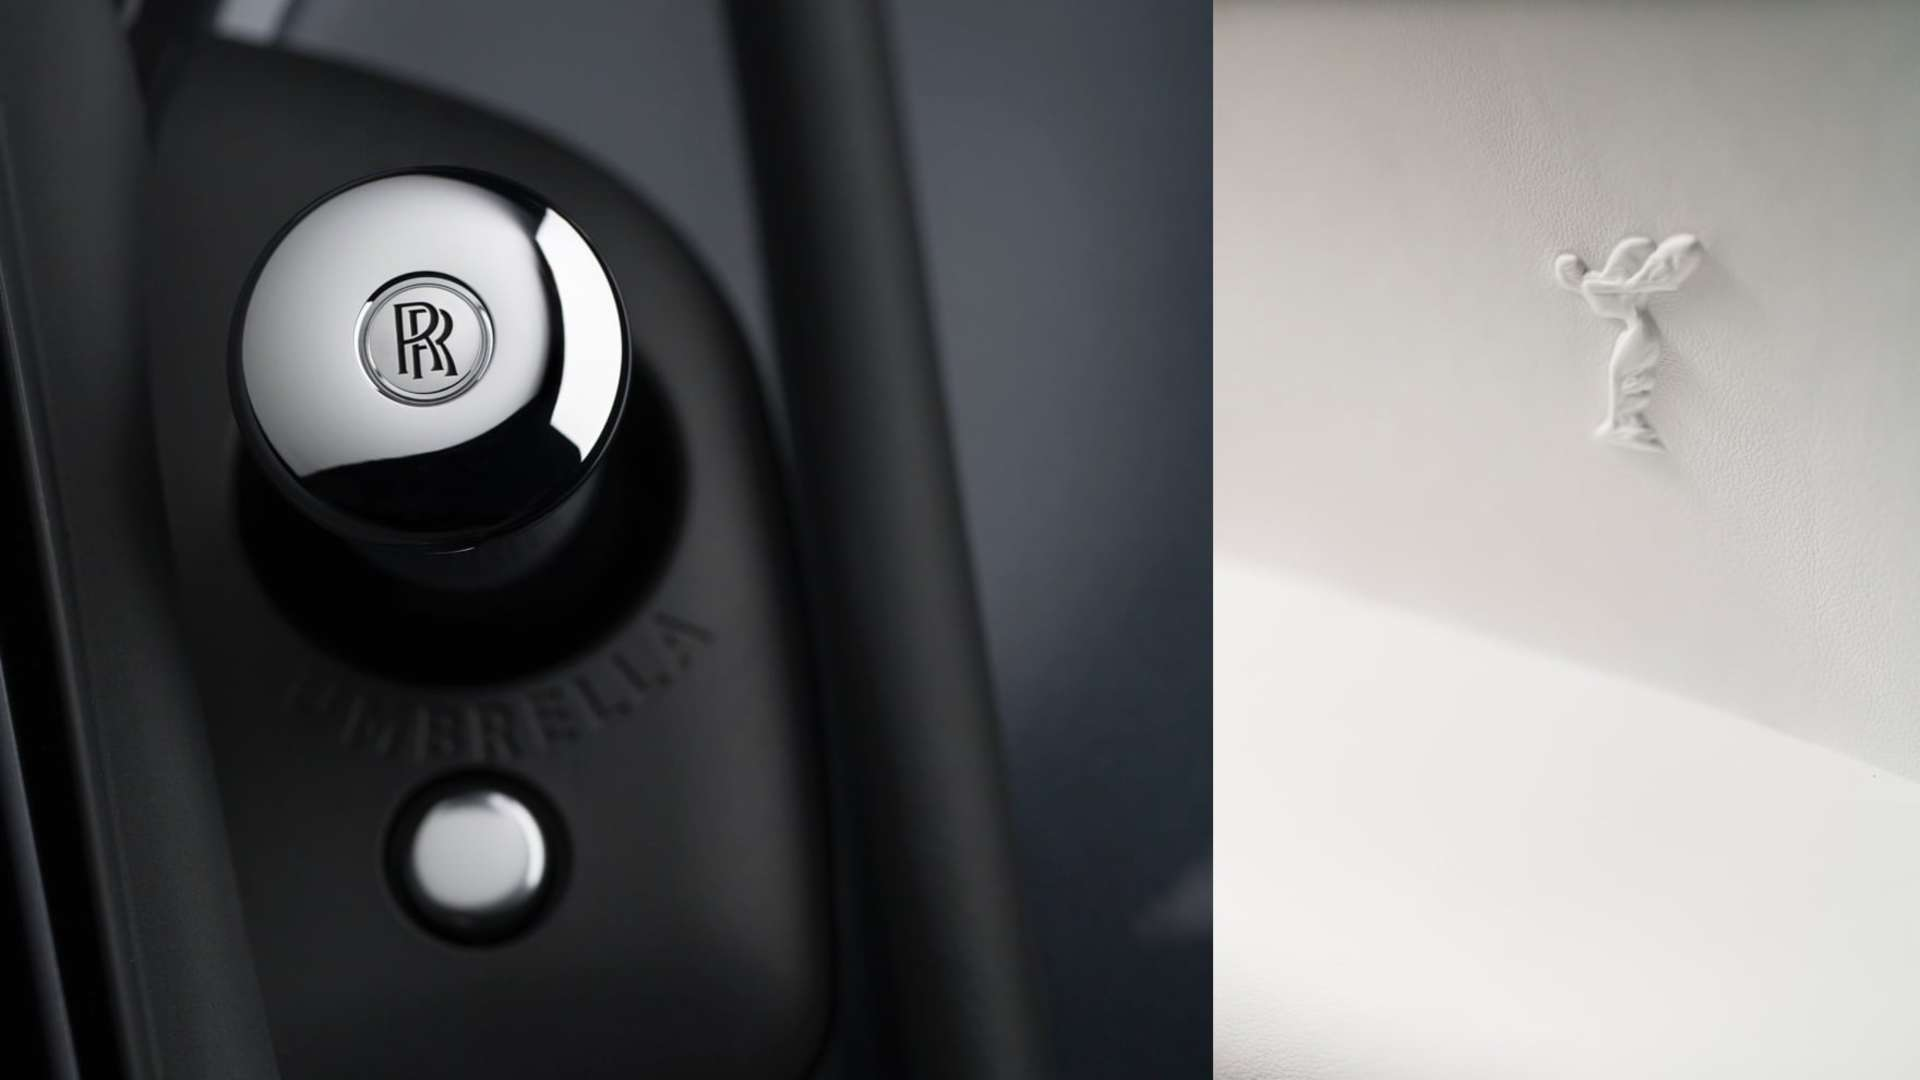 A close up of the interior detailing in a Rolls-Royce Cullinan motor car